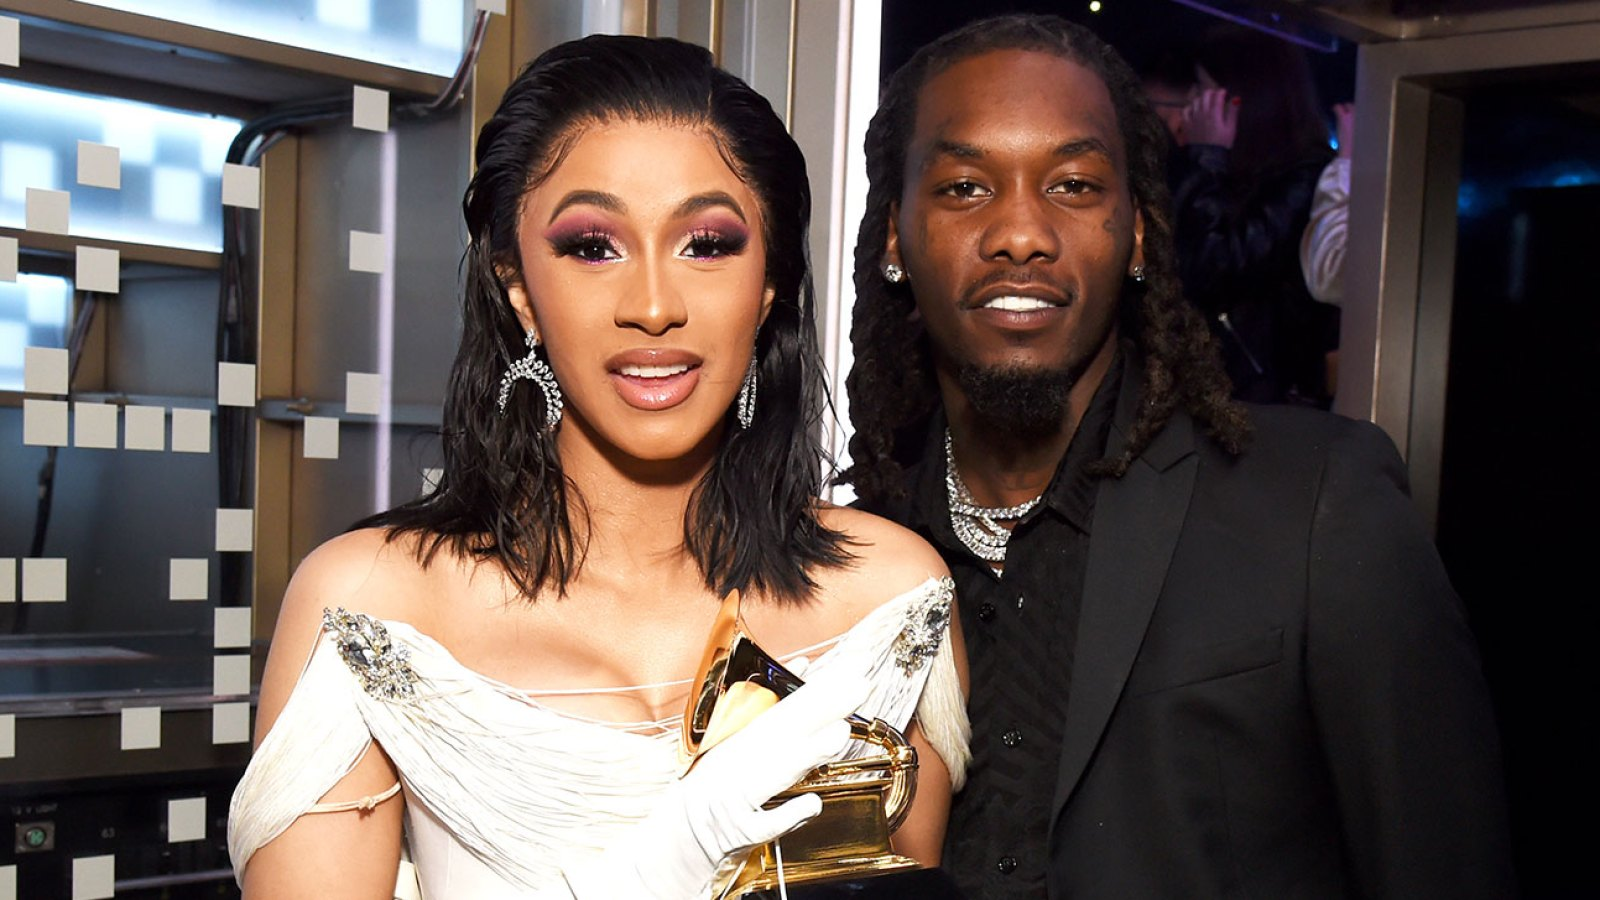 Cardi B Shares Easter Family Photo With Offset Daughter Kulture